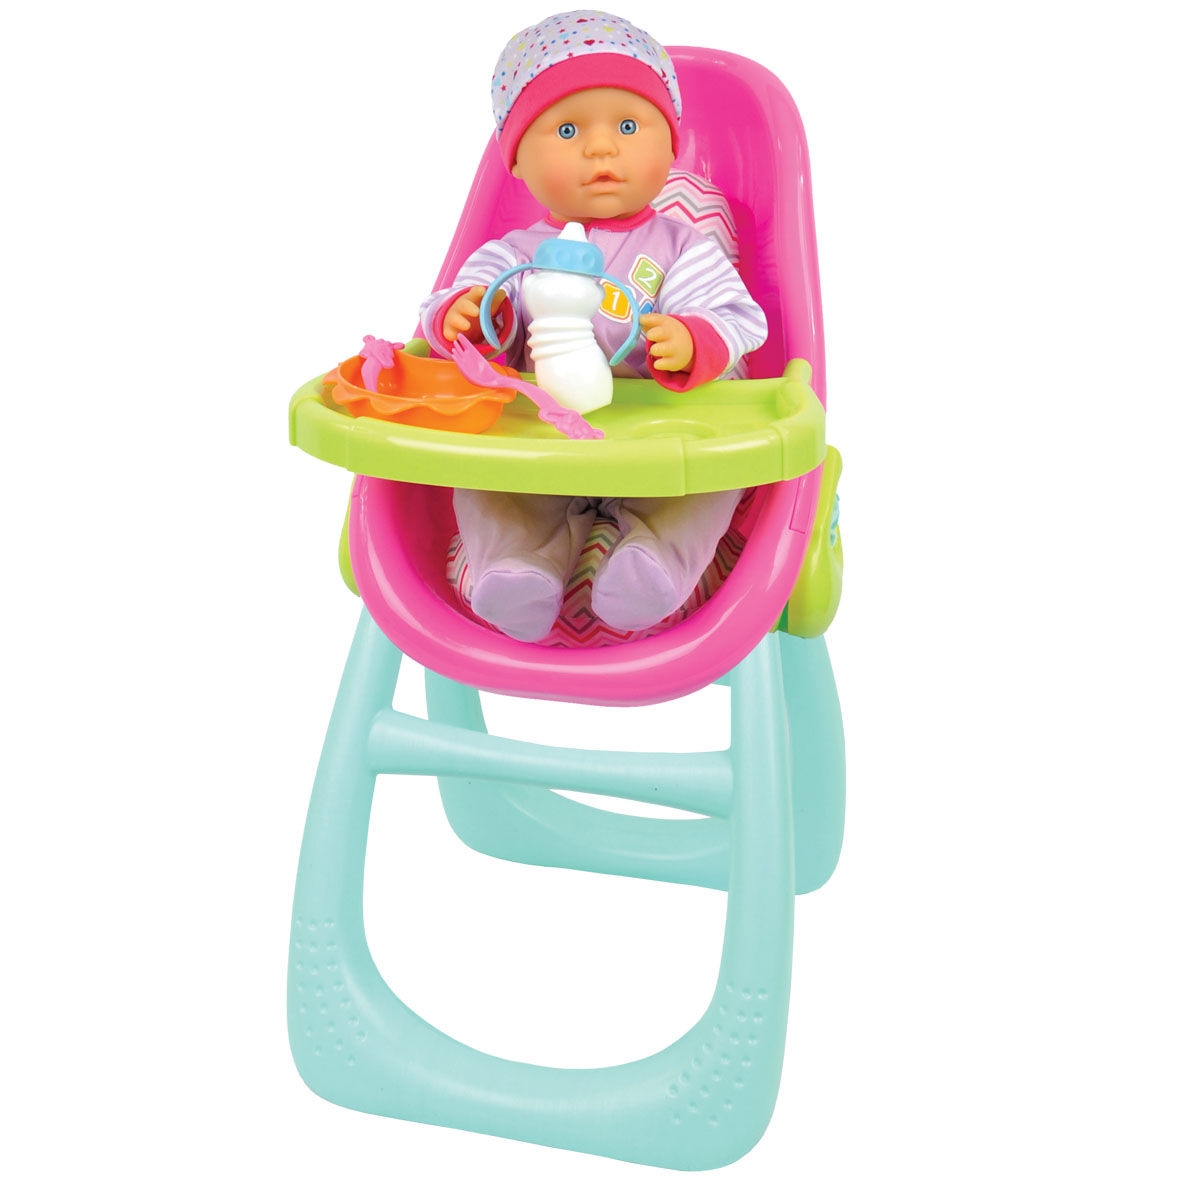 Baby Babbles High Chair & Baby